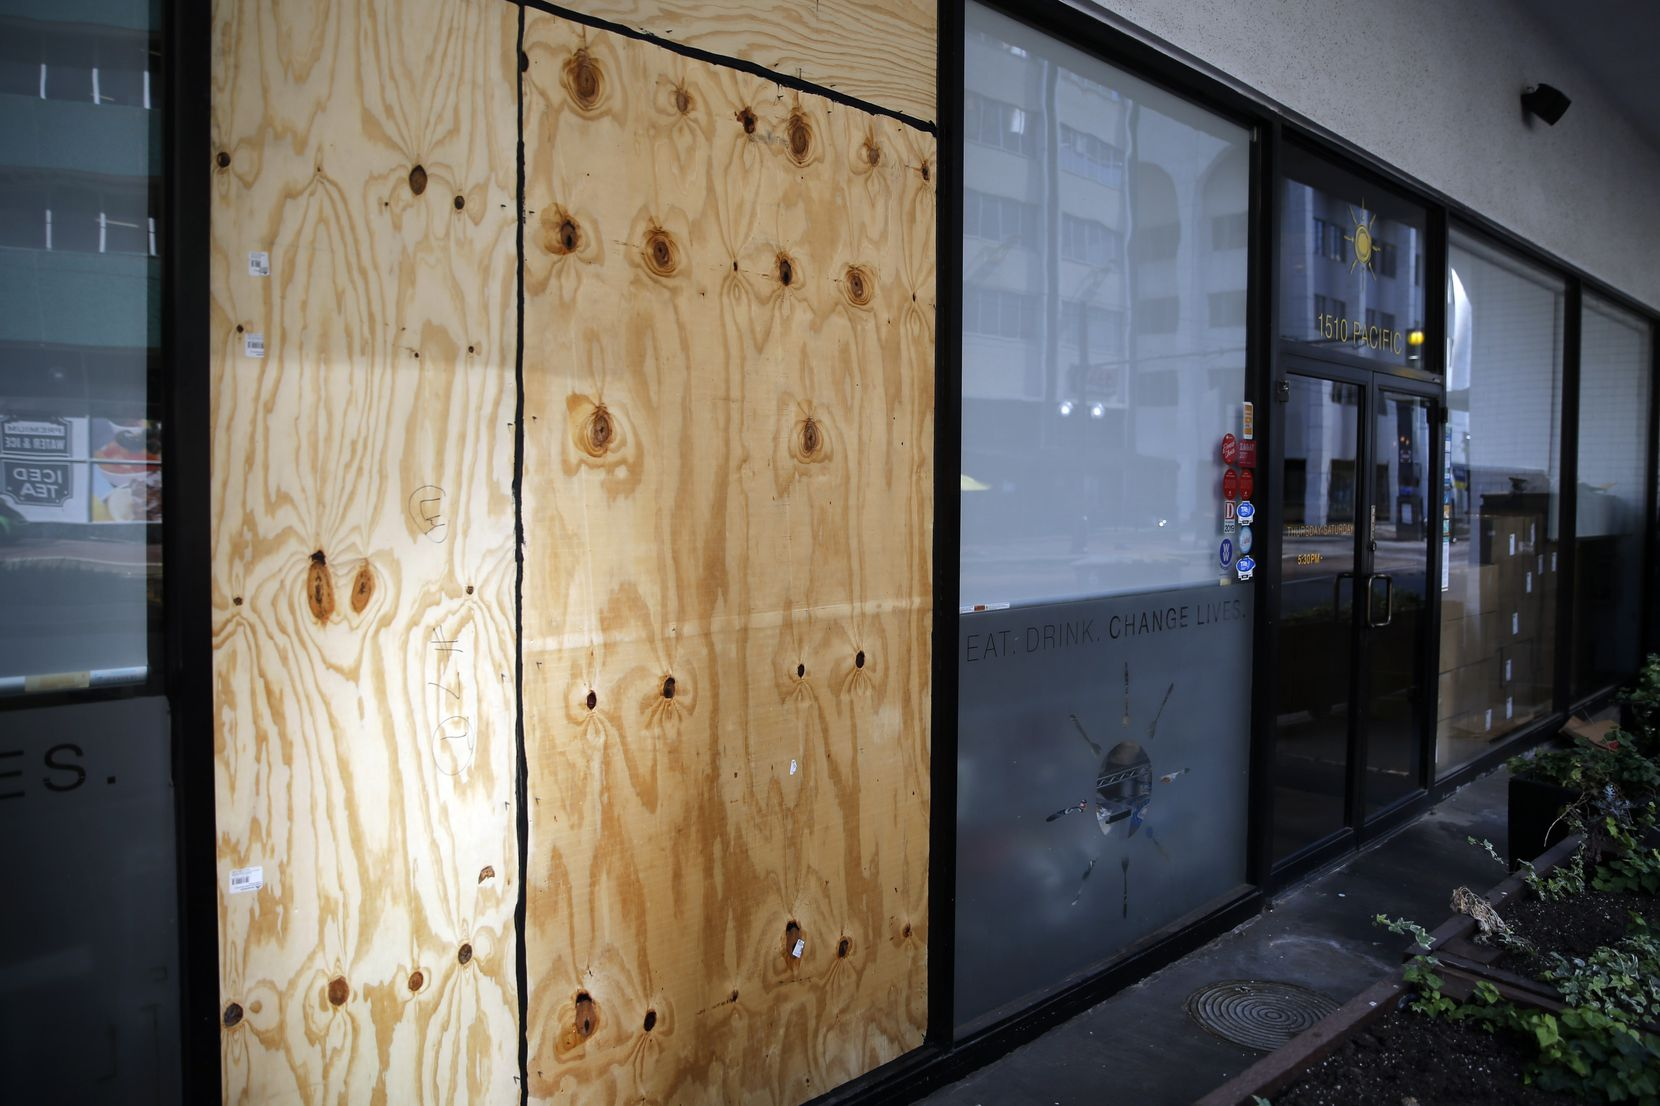 Plywood has been installed to cover the spot where one of Café Momentum's large street-side windows was broken out. Soon a manifesto, from the voices of interns and staff, will be placed on the plywood.